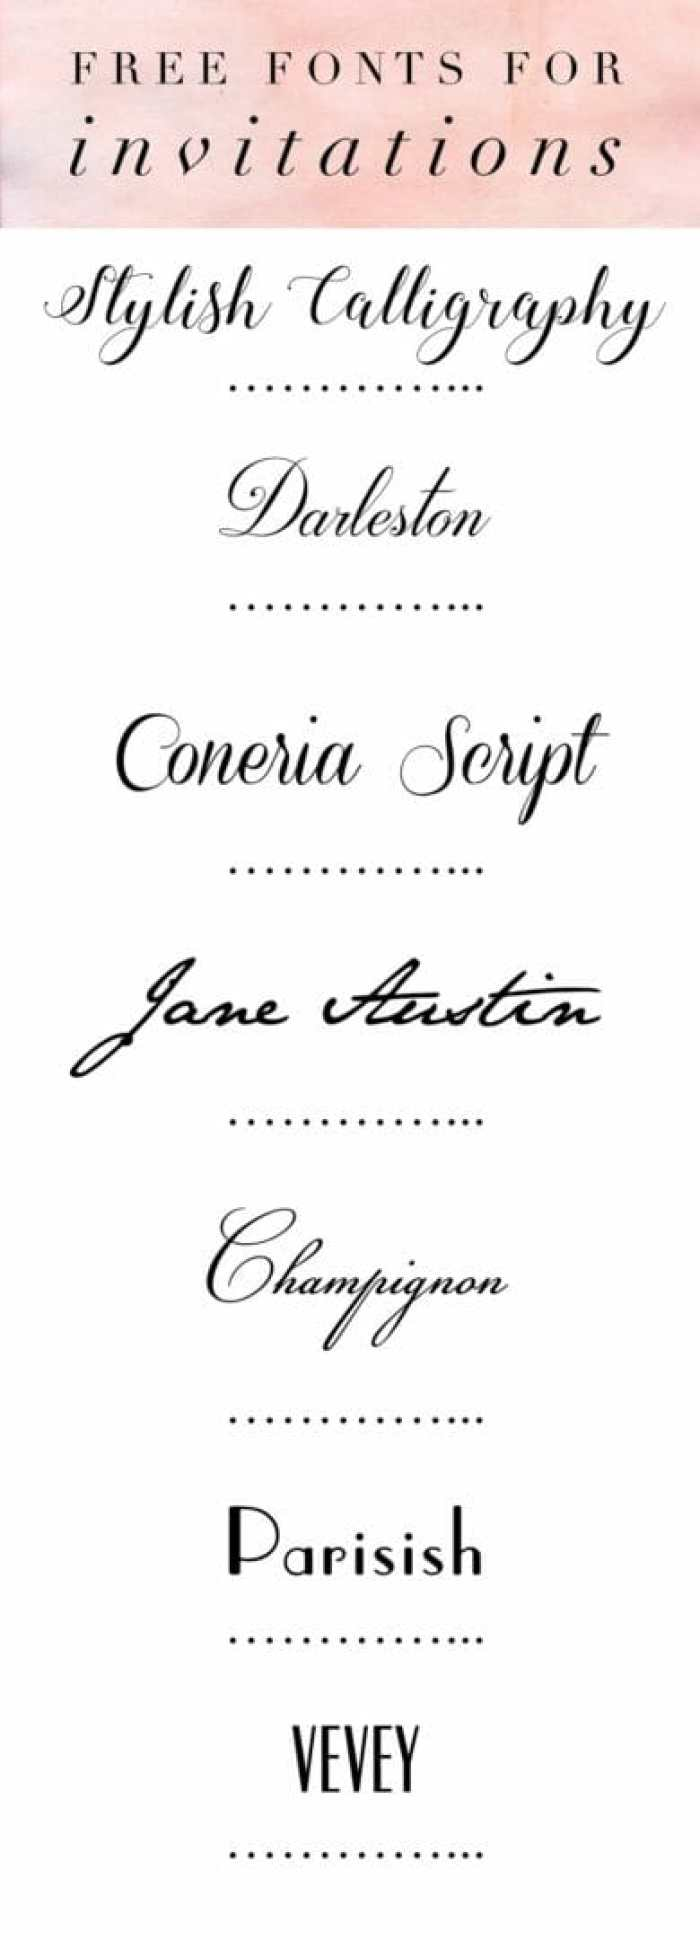 free fonts for Wedding invitations